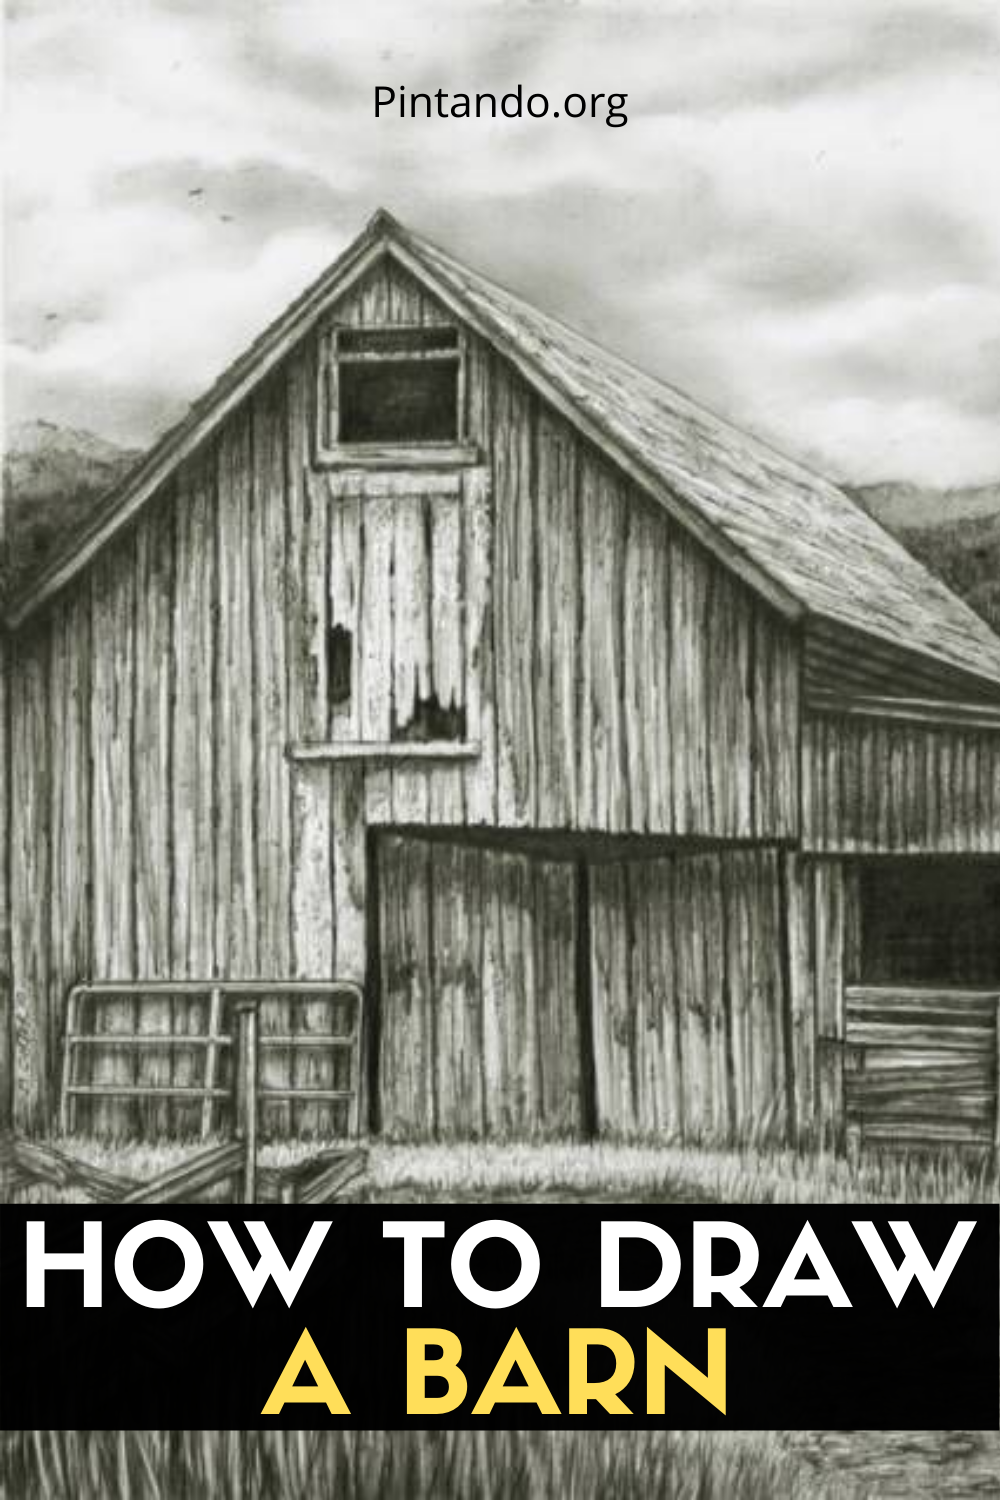 HOW TO DRAW A BARN (1)